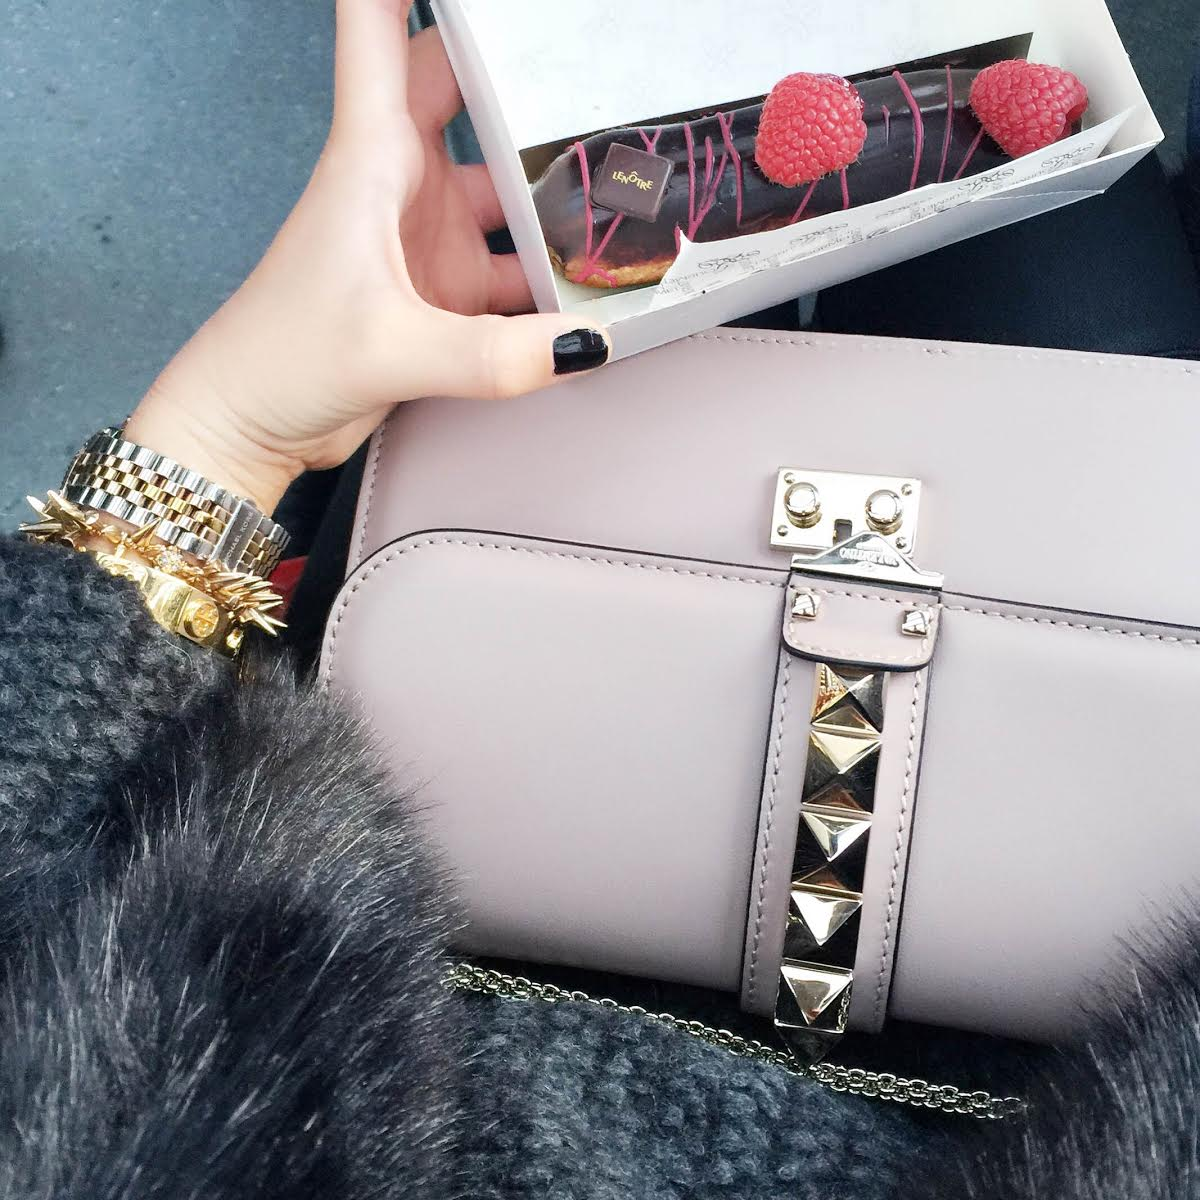 glam-lock-bag-valentino-outfit-details